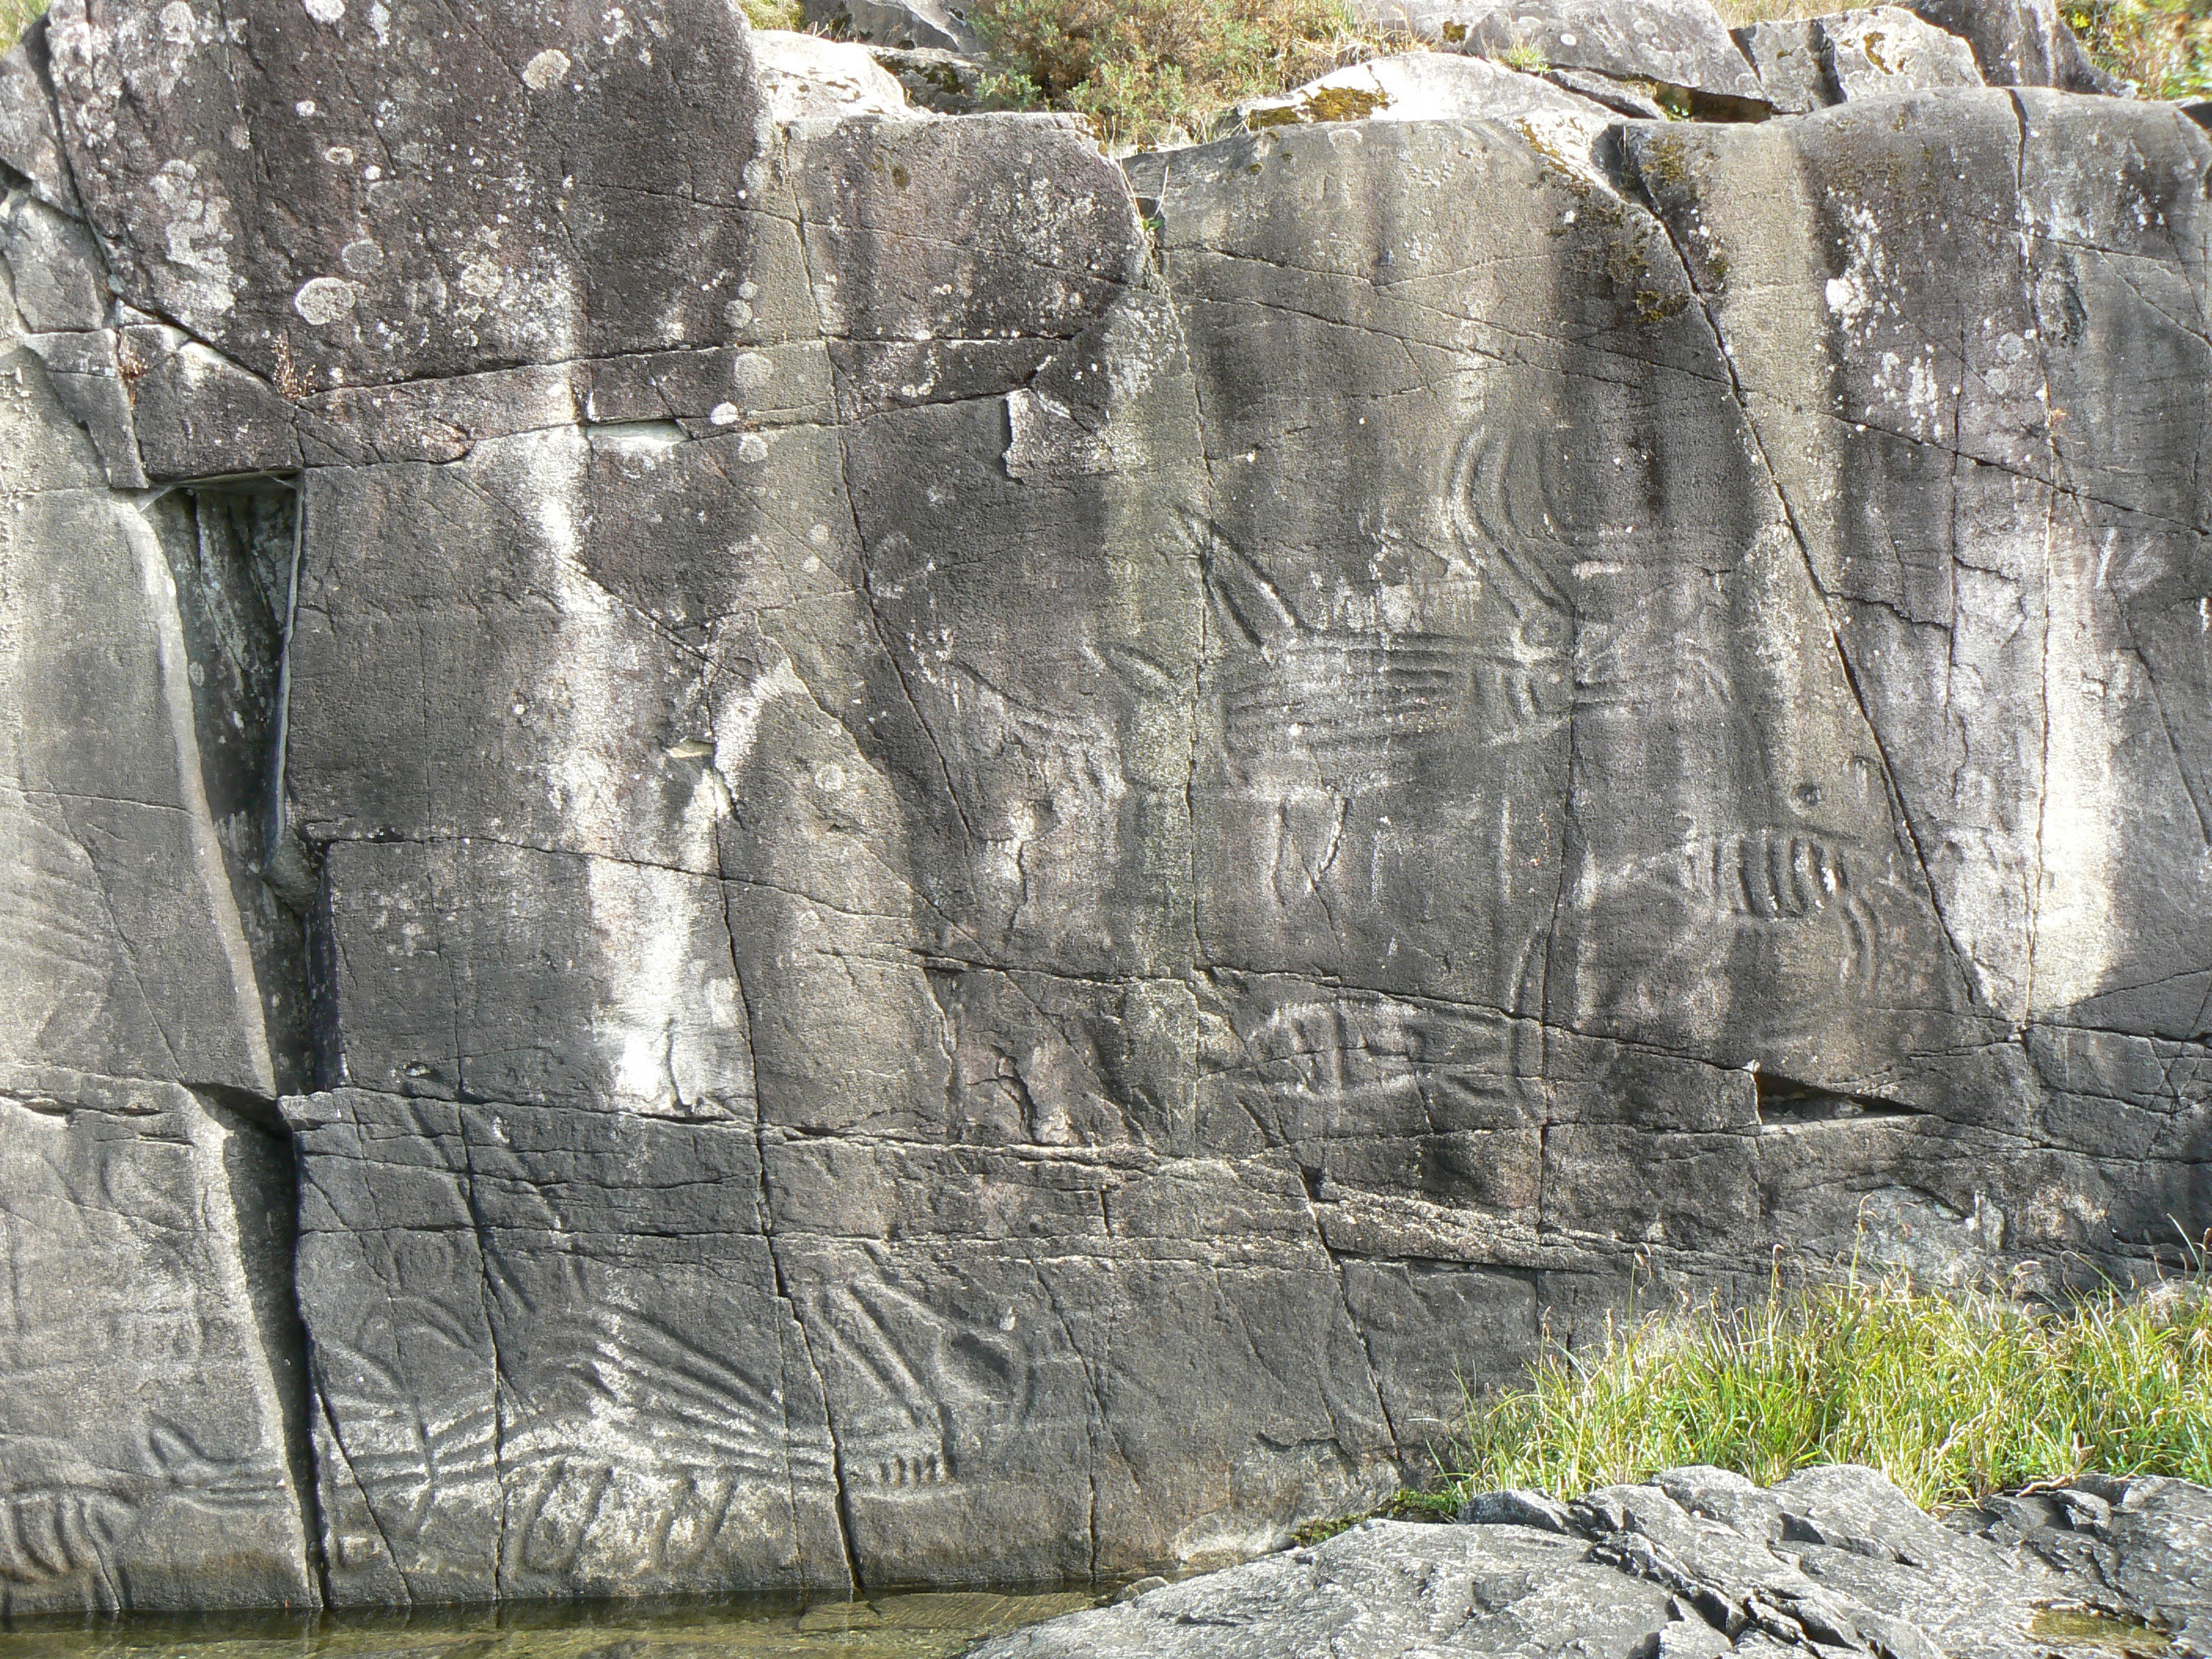 http://upload.wikimedia.org/wikipedia/commons/8/88/Petroglyphs_at_Sproat_Lake_Provincial_Park.JPG